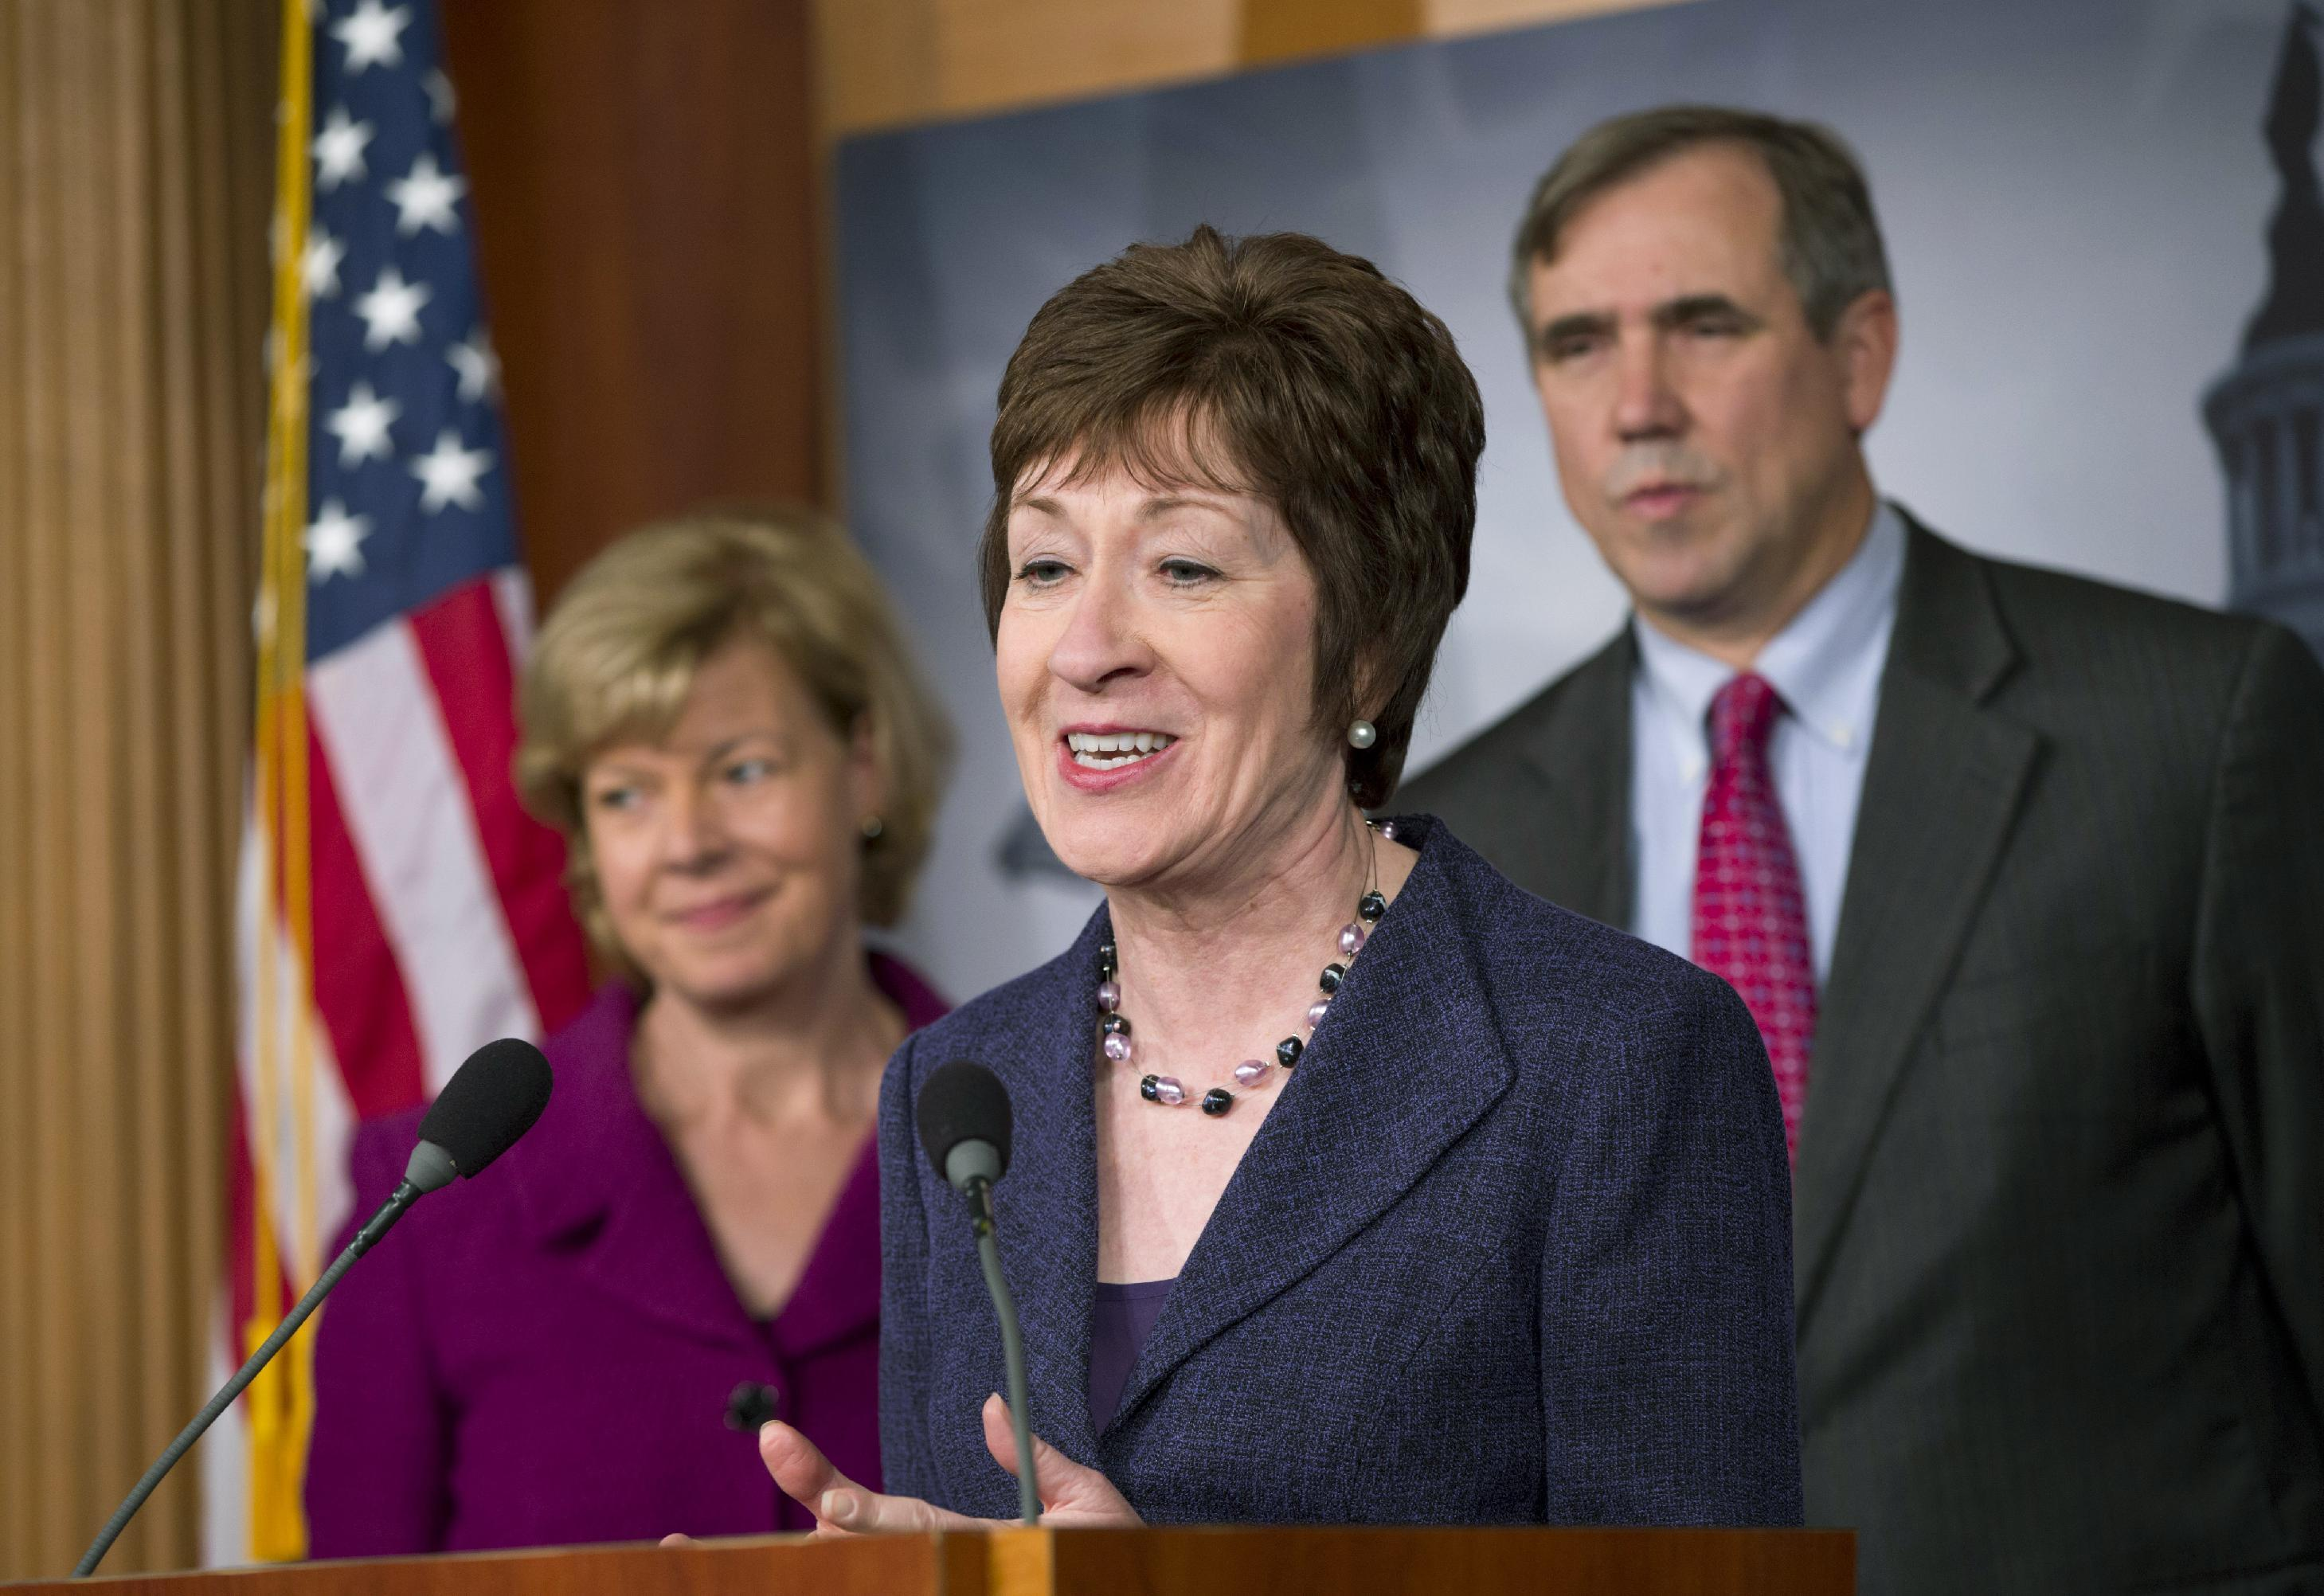 Sen. Susan Collins, R-Maine, flanked by Sen. Tammy Baldwin, D-Wis., left, and Sen. Jeff Merkley, D-Ore., right, talks to reporters after the Senate cleared a major hurdle and agreed to proceed to debate a bill that would prohibit workplace discrimination against gay, bisexual and transgender Americans, at the Capitol in Washington, Monday, Nov. 4, 2013. The bipartisan vote increases the chances that the Senate will pass the bill by week's end, but its prospects in the Republican-led House are dimmer. (AP Photo/J. Scott Applewhite)